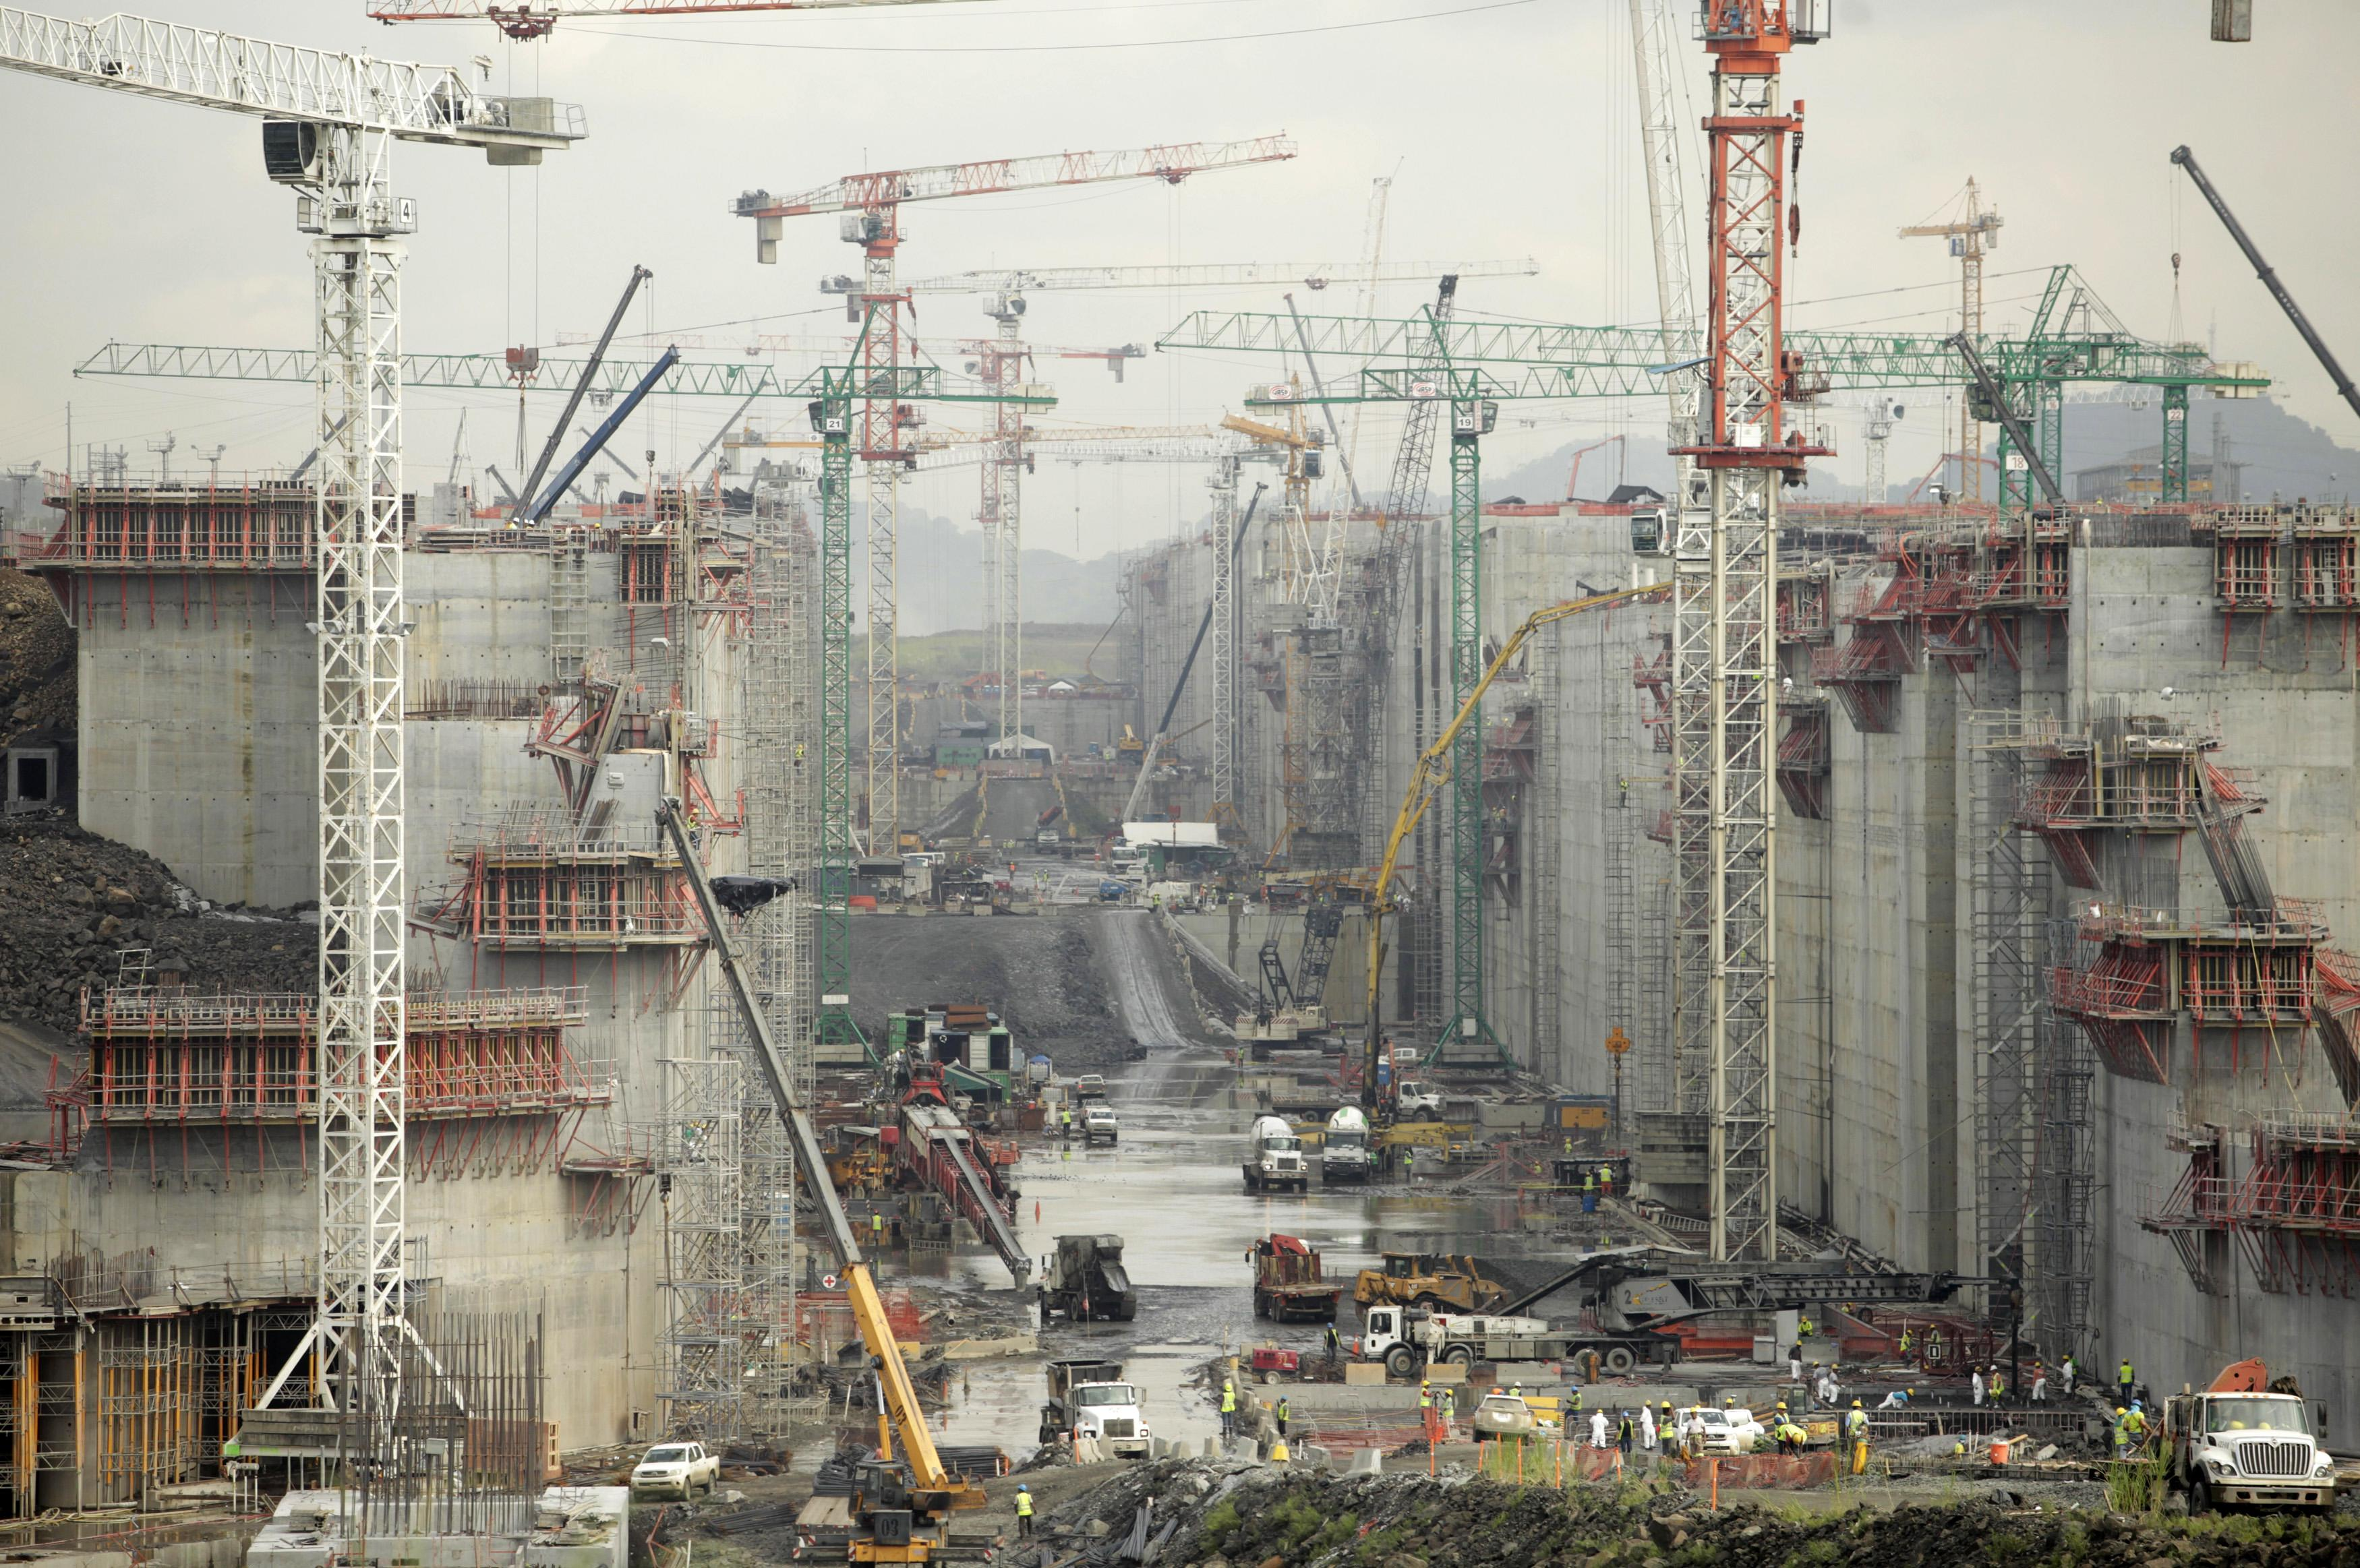 Panama Canal Construction